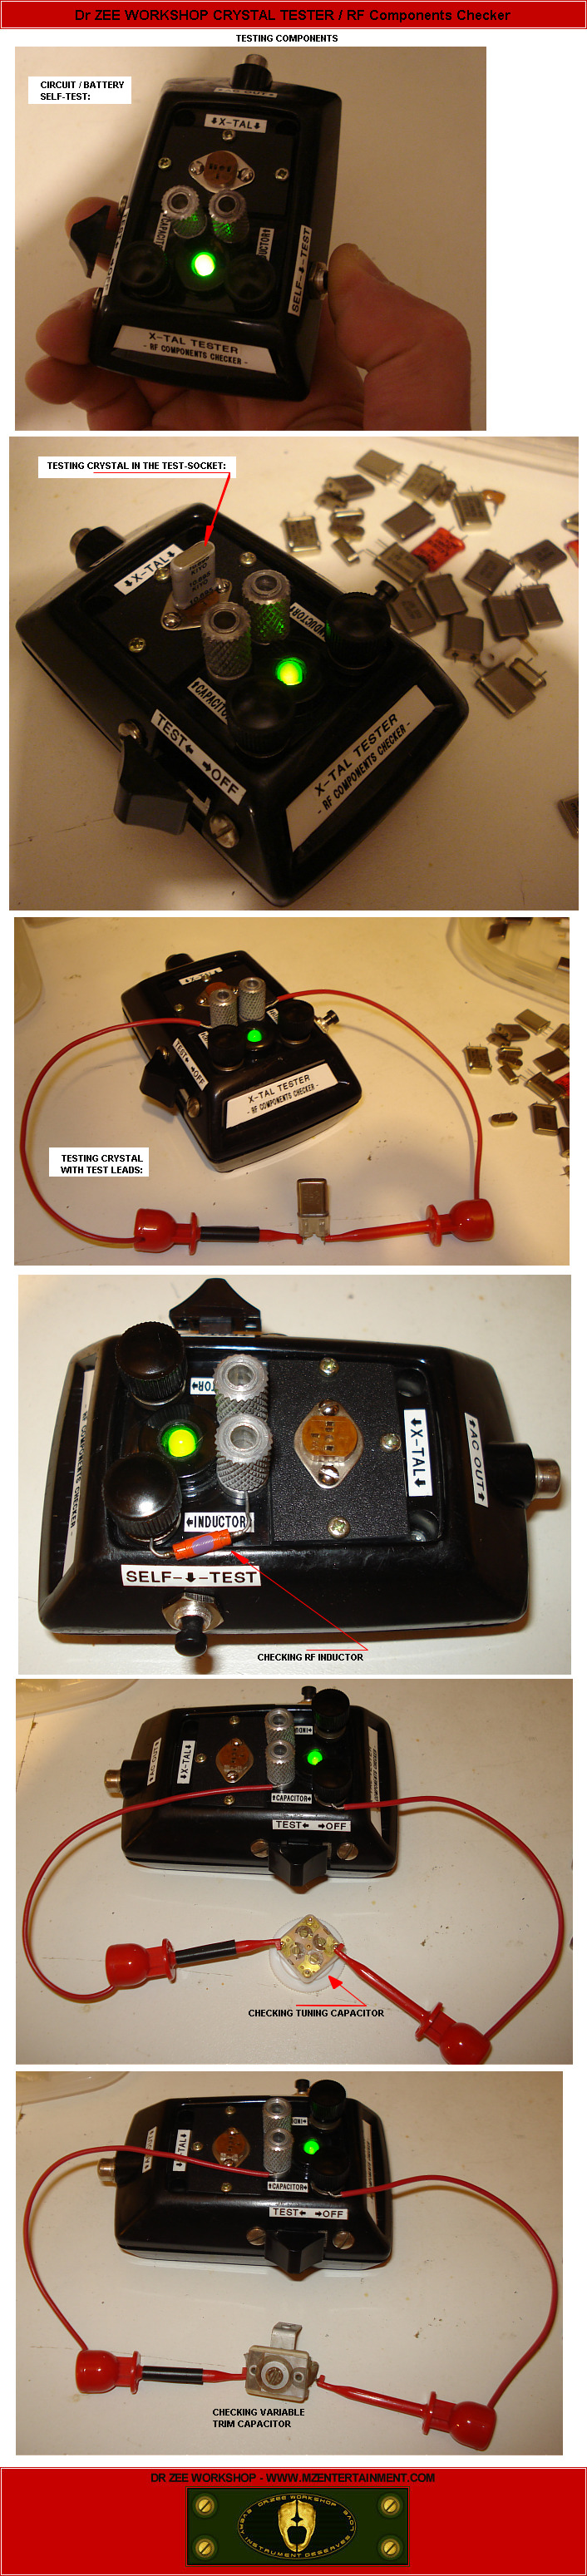 Mze Electroarts Entertainment Dr Zee Crystal Tester Circuit Schematic Diagram Workshop X Tal Photo Gallery Technical Information Schematics